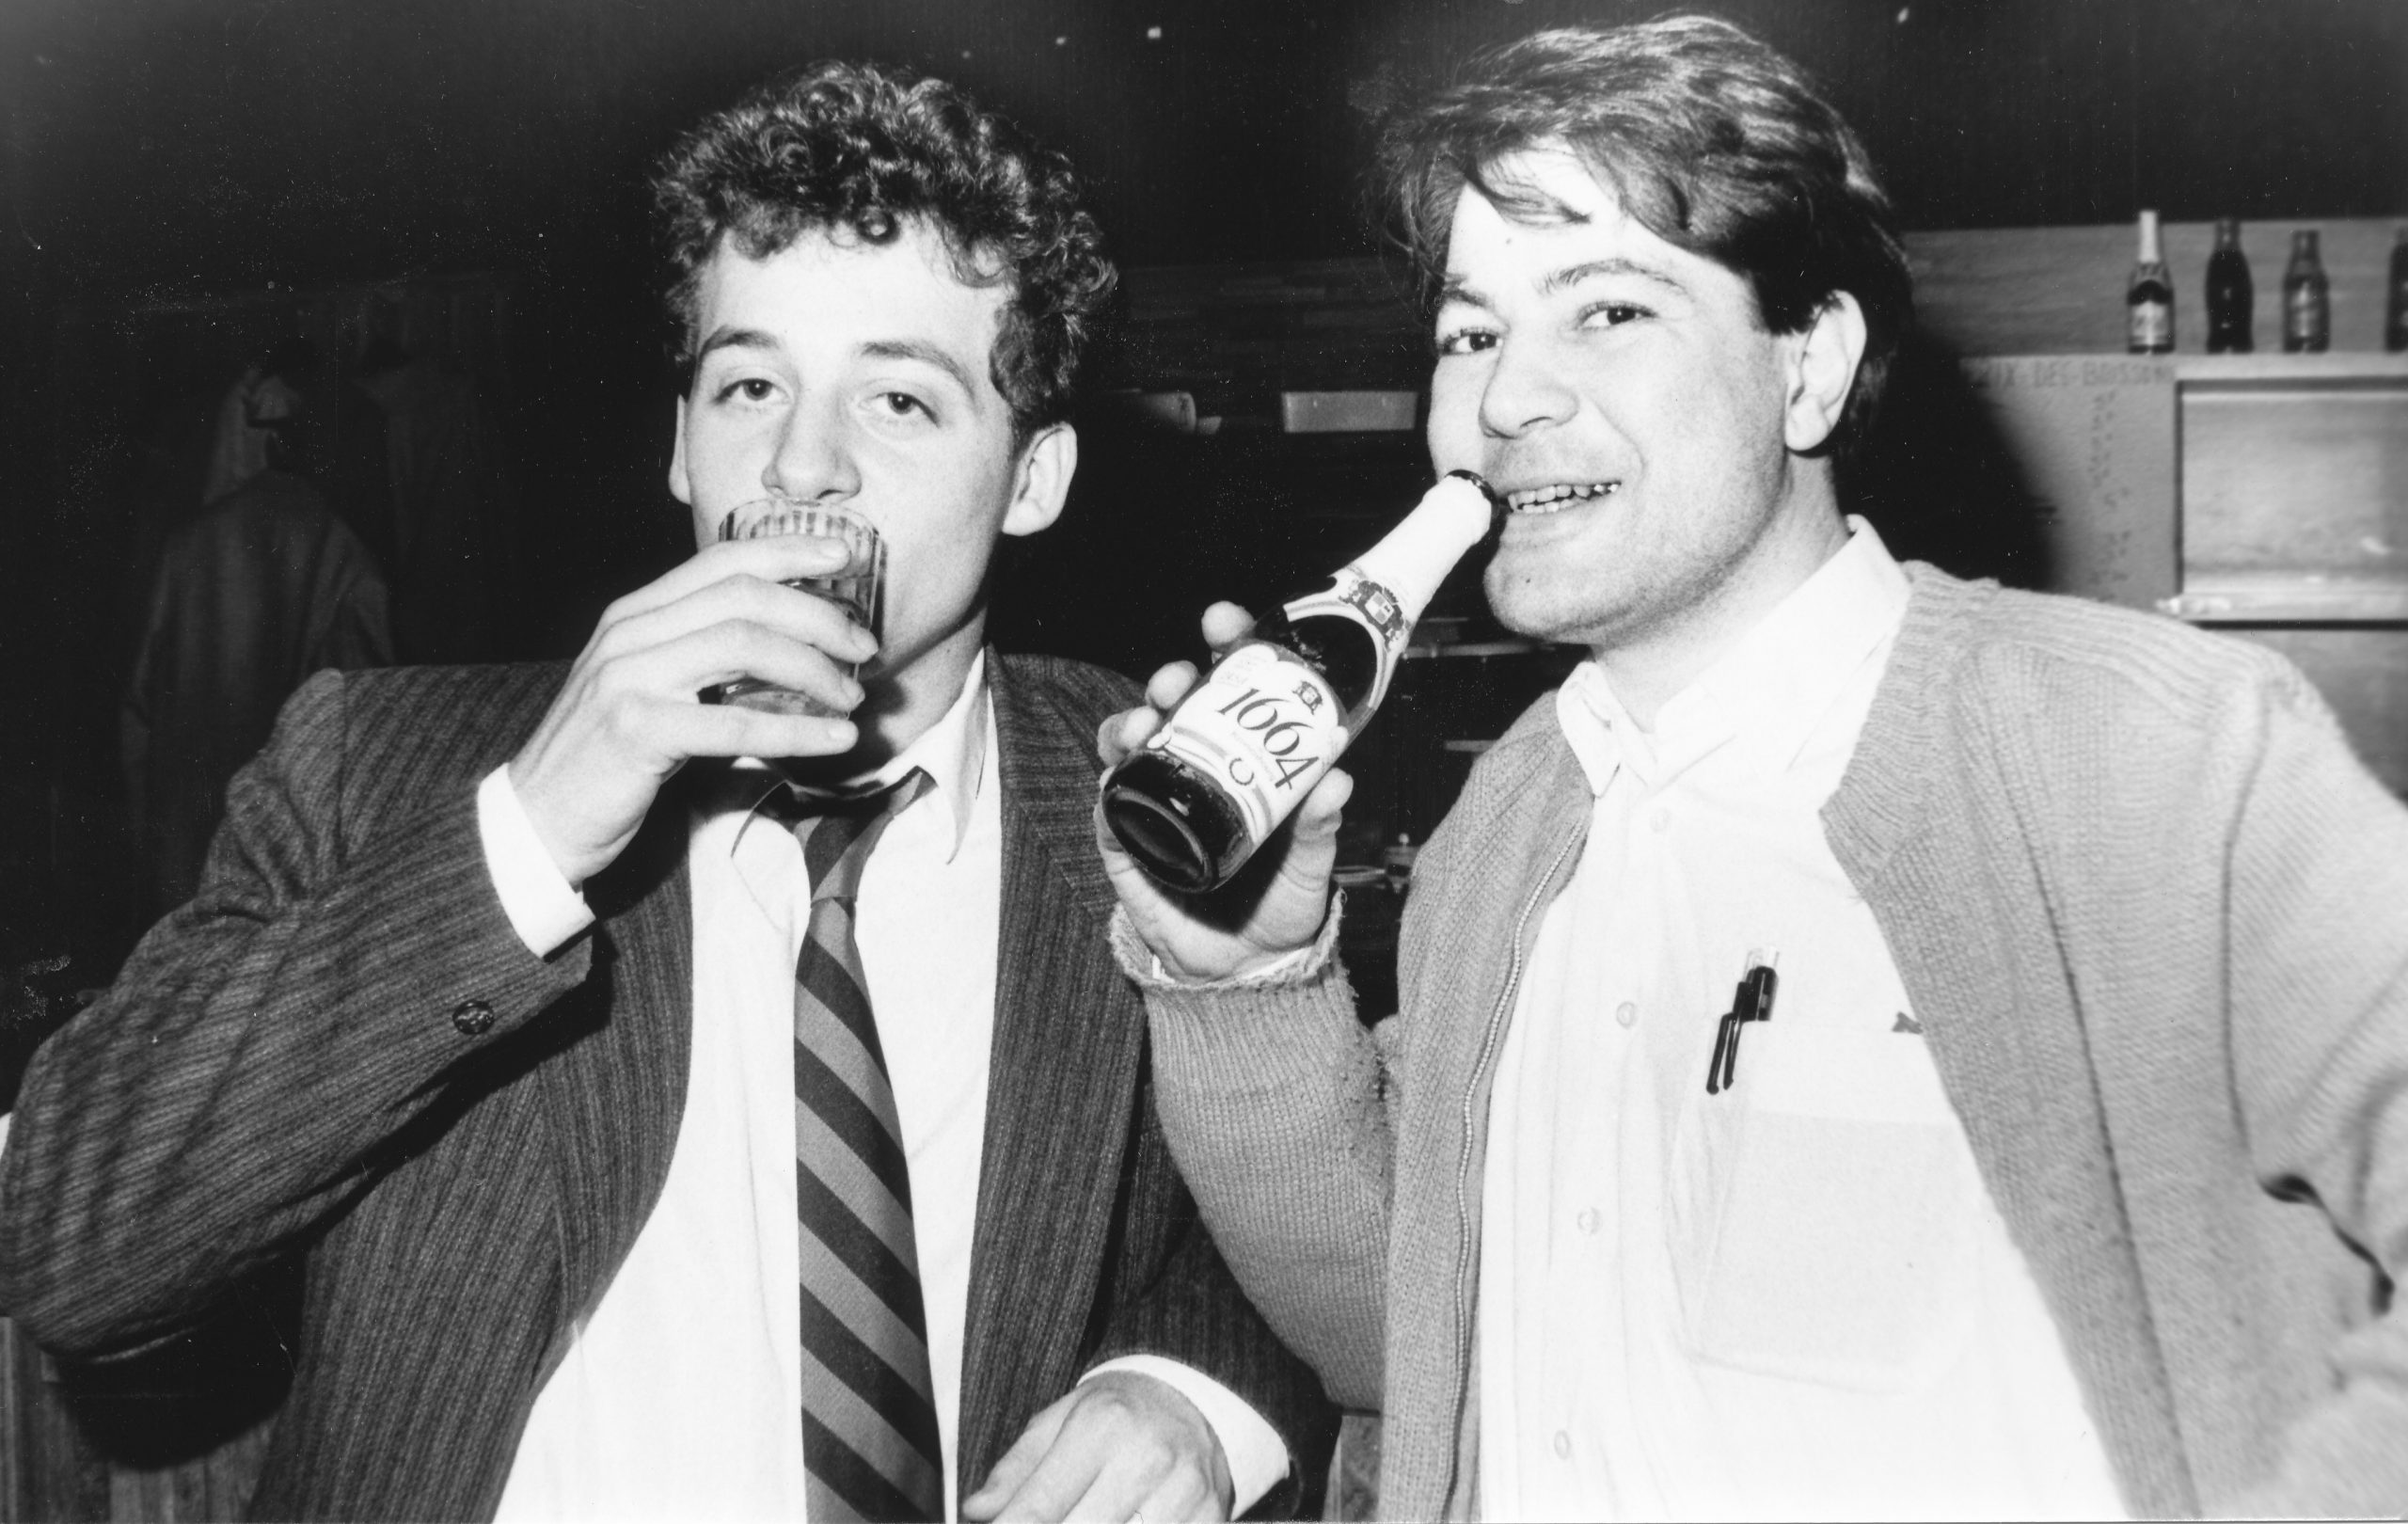 IM David Norwood and IM Aldo Haik (France) taking a drink at the bar during Cappelle-Le-Grande, 1988. Photograph by Caroline Winkler